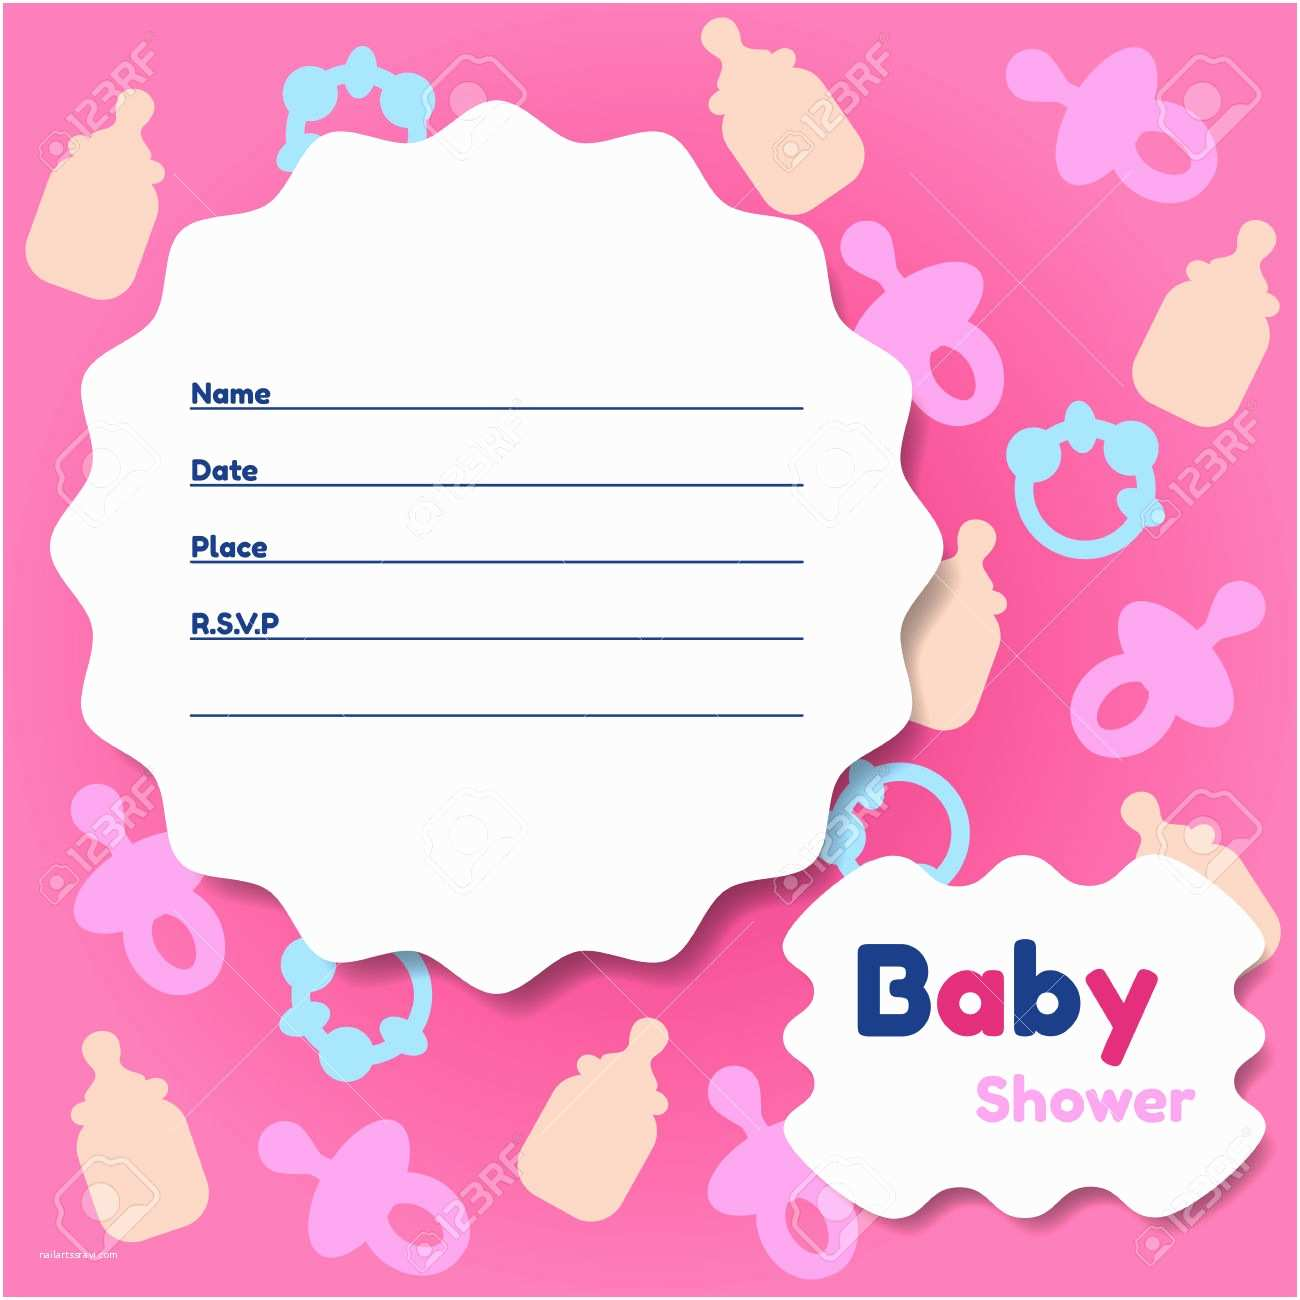 Baby Shower Invitation Template Template Baby Shower Card Template Baby Shower